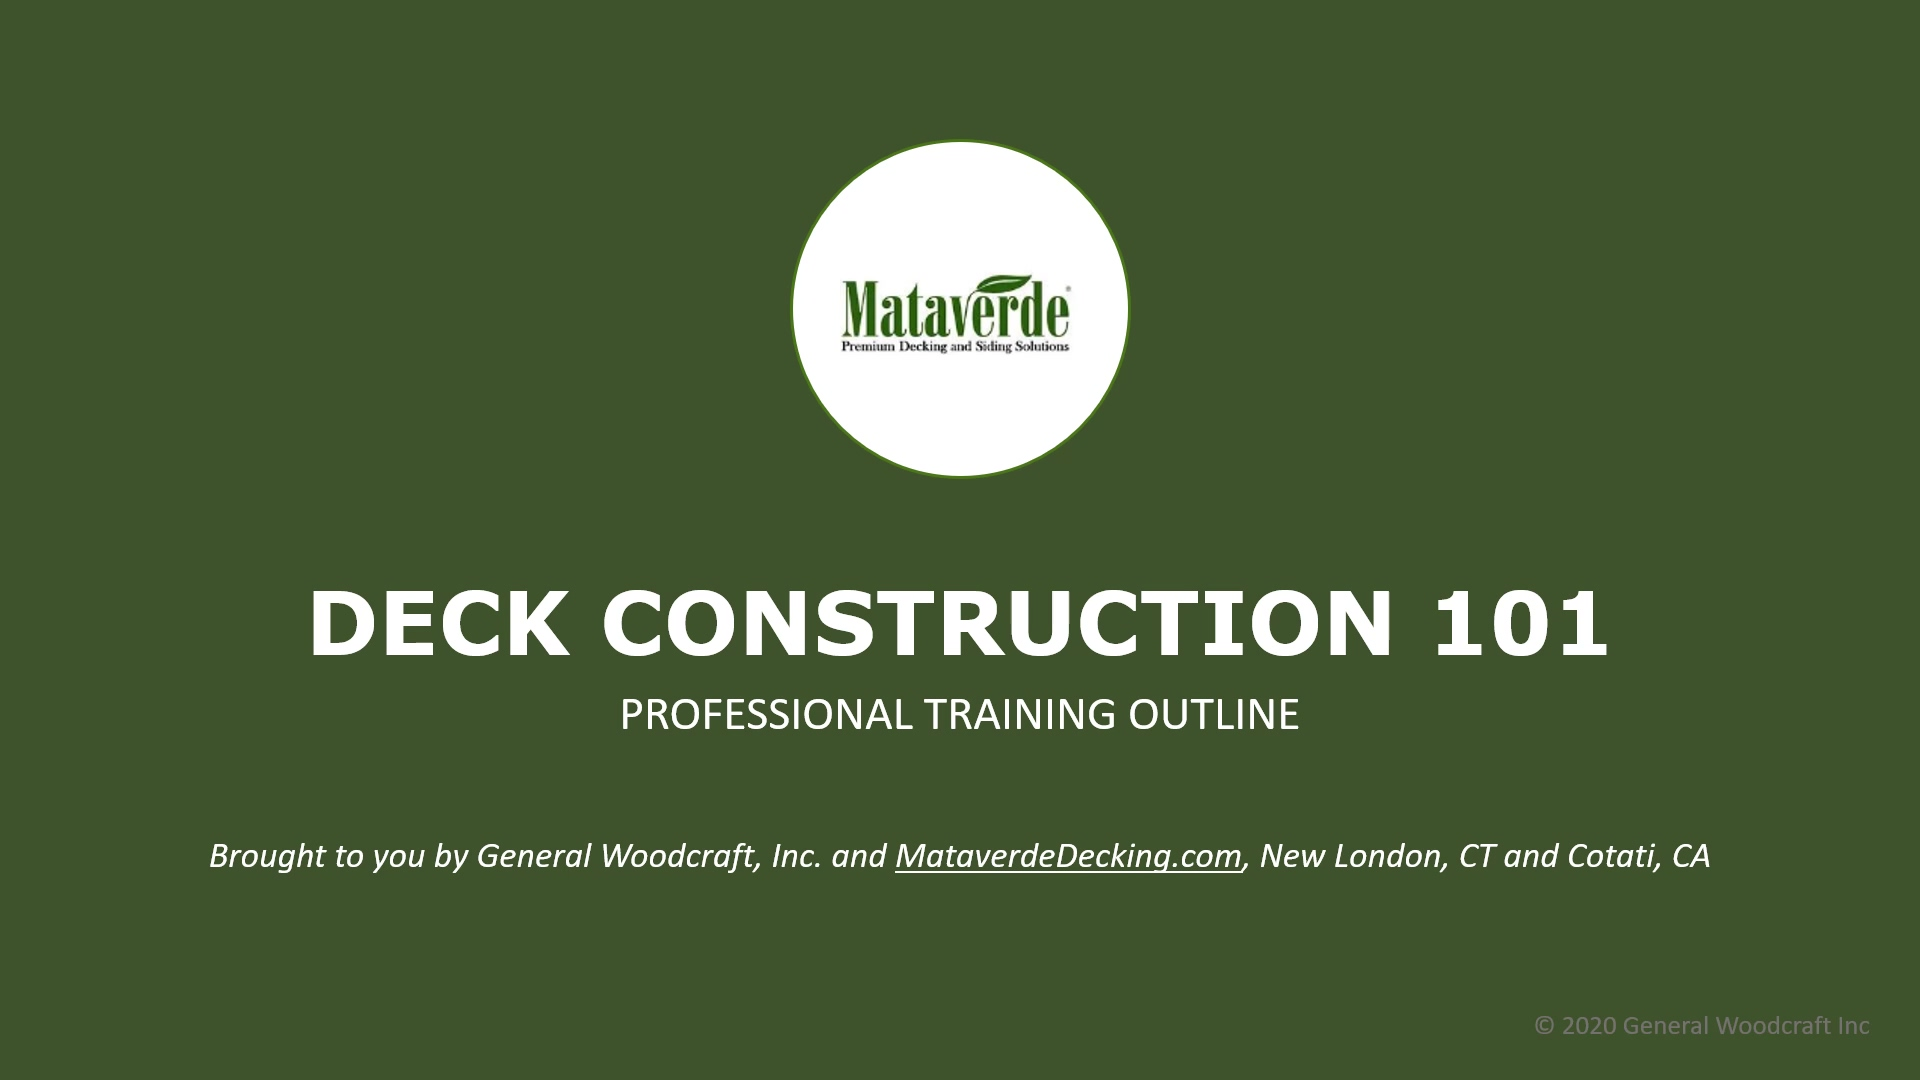 DECK CONSTRUCTION 101 Online Training